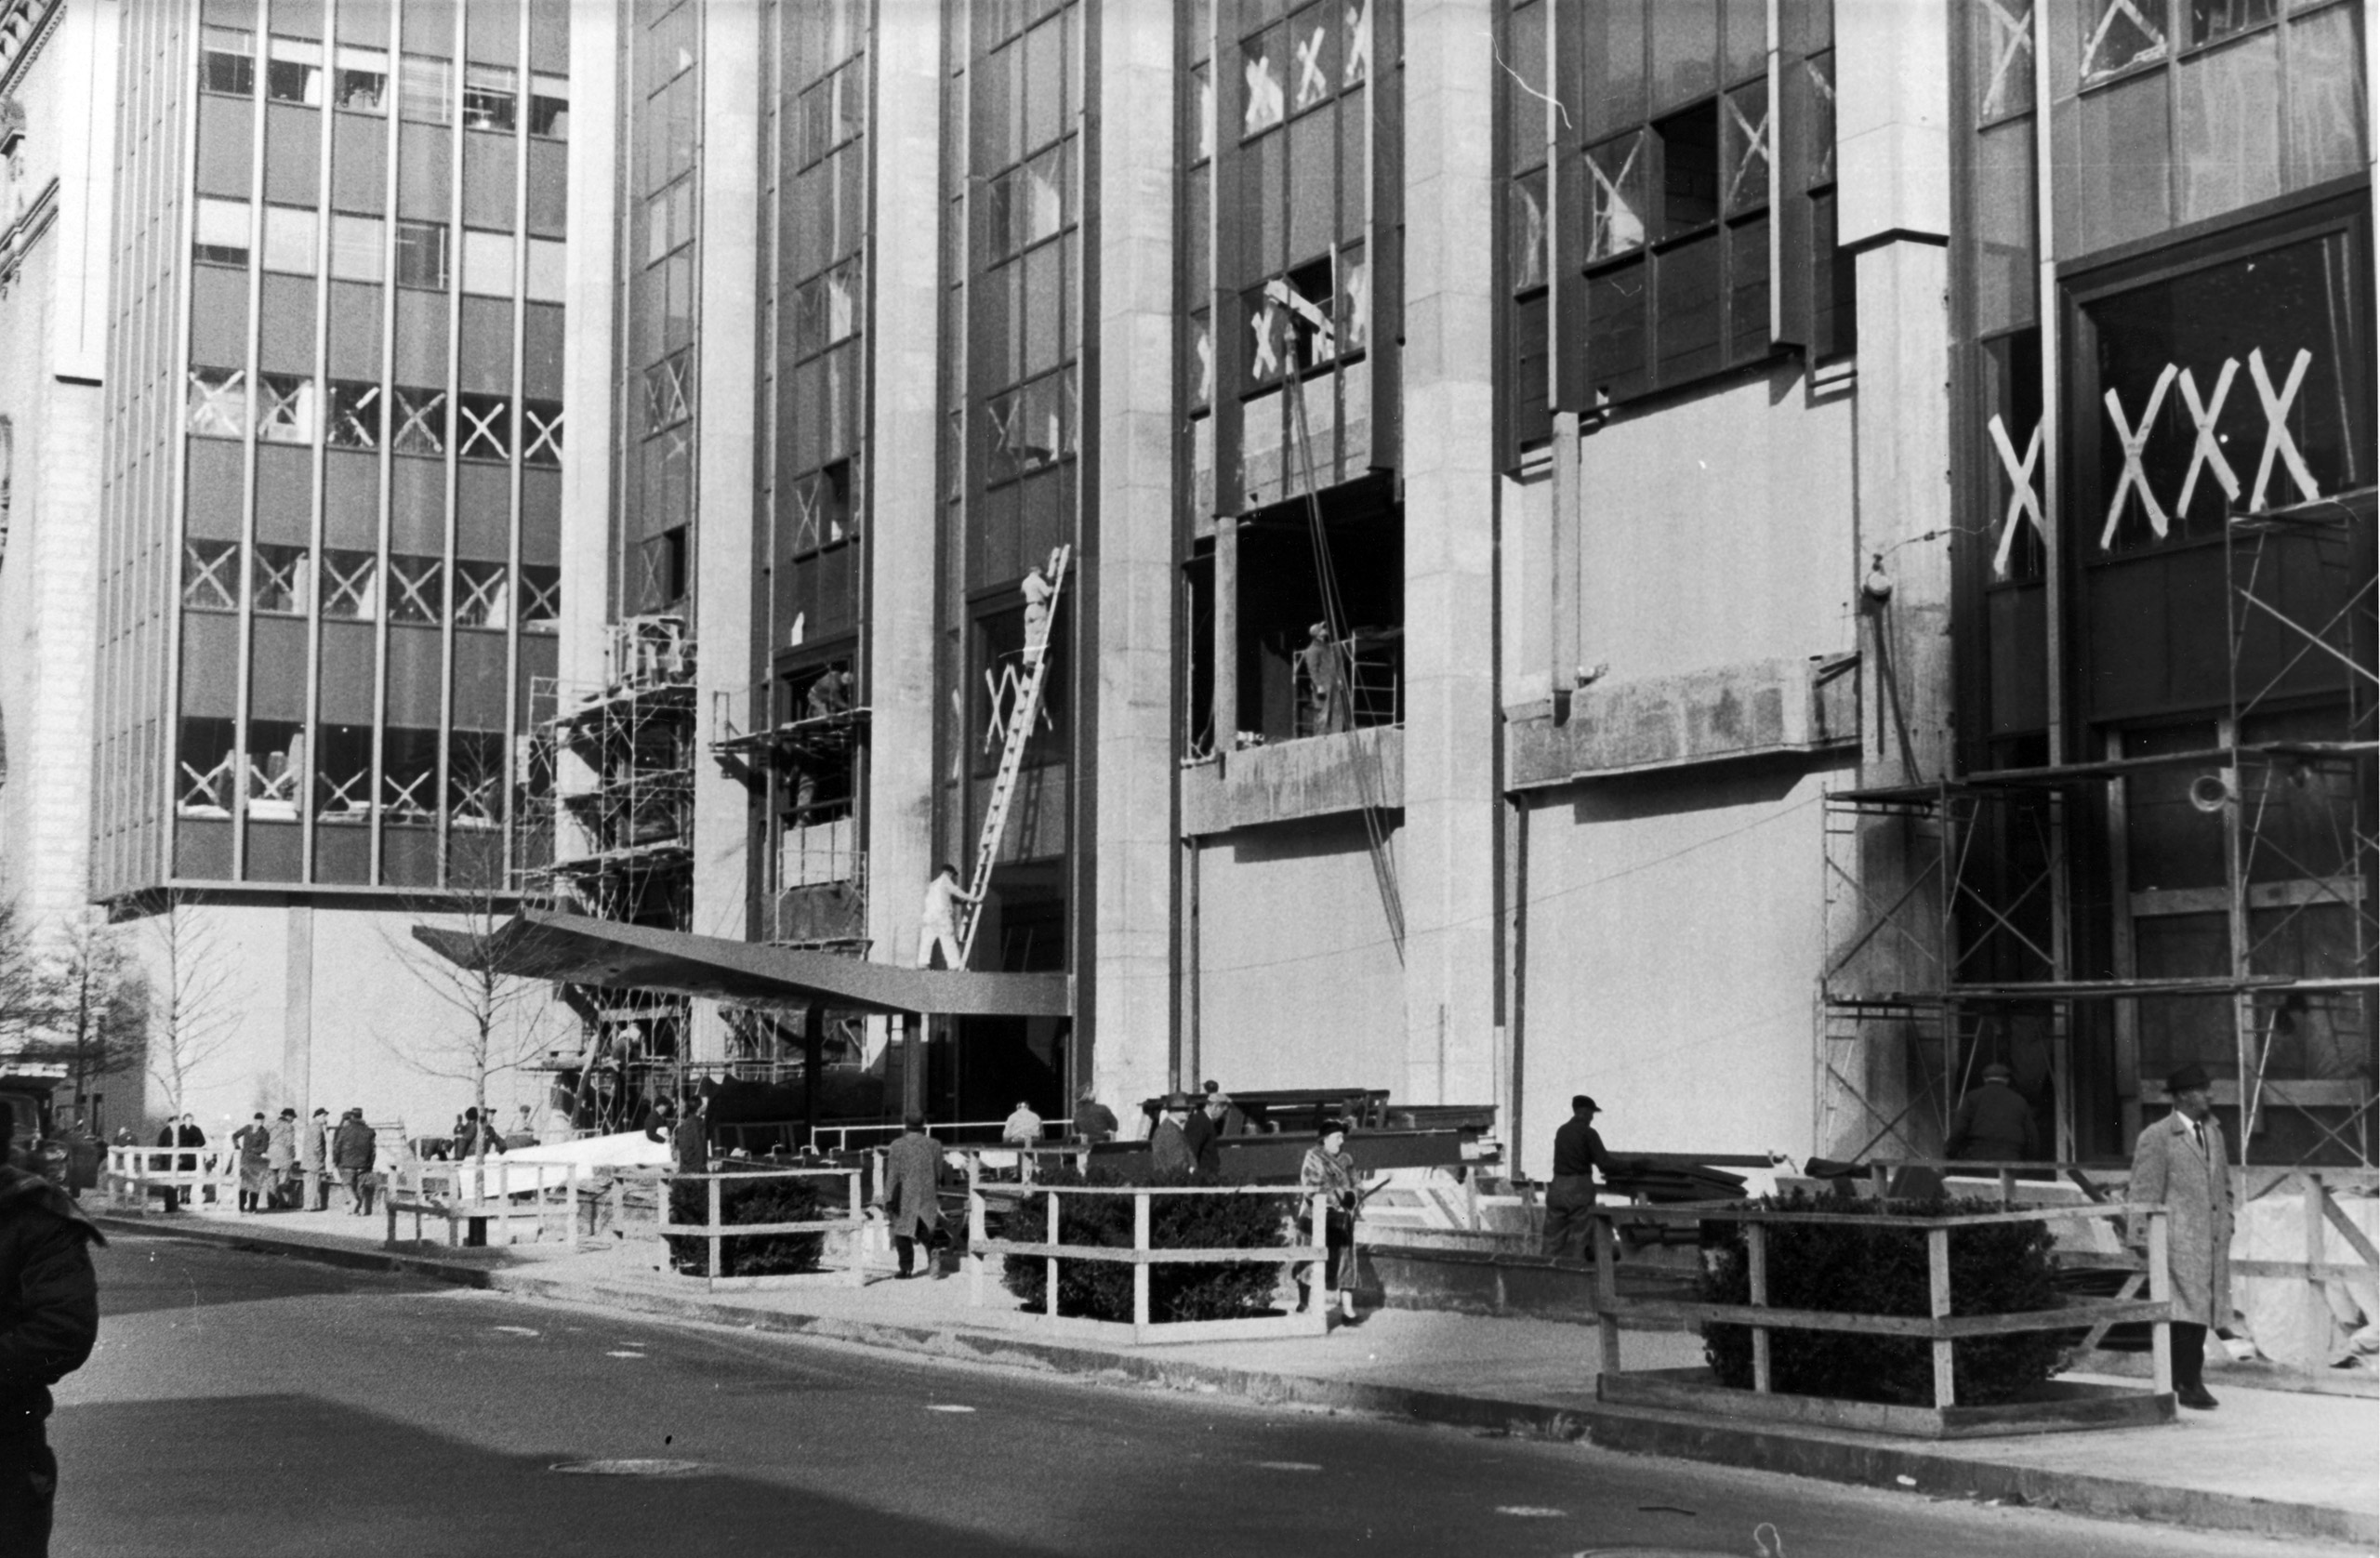 Construction of the Time & Life Building at Avenue of the Americas and 50th Street, 1959.